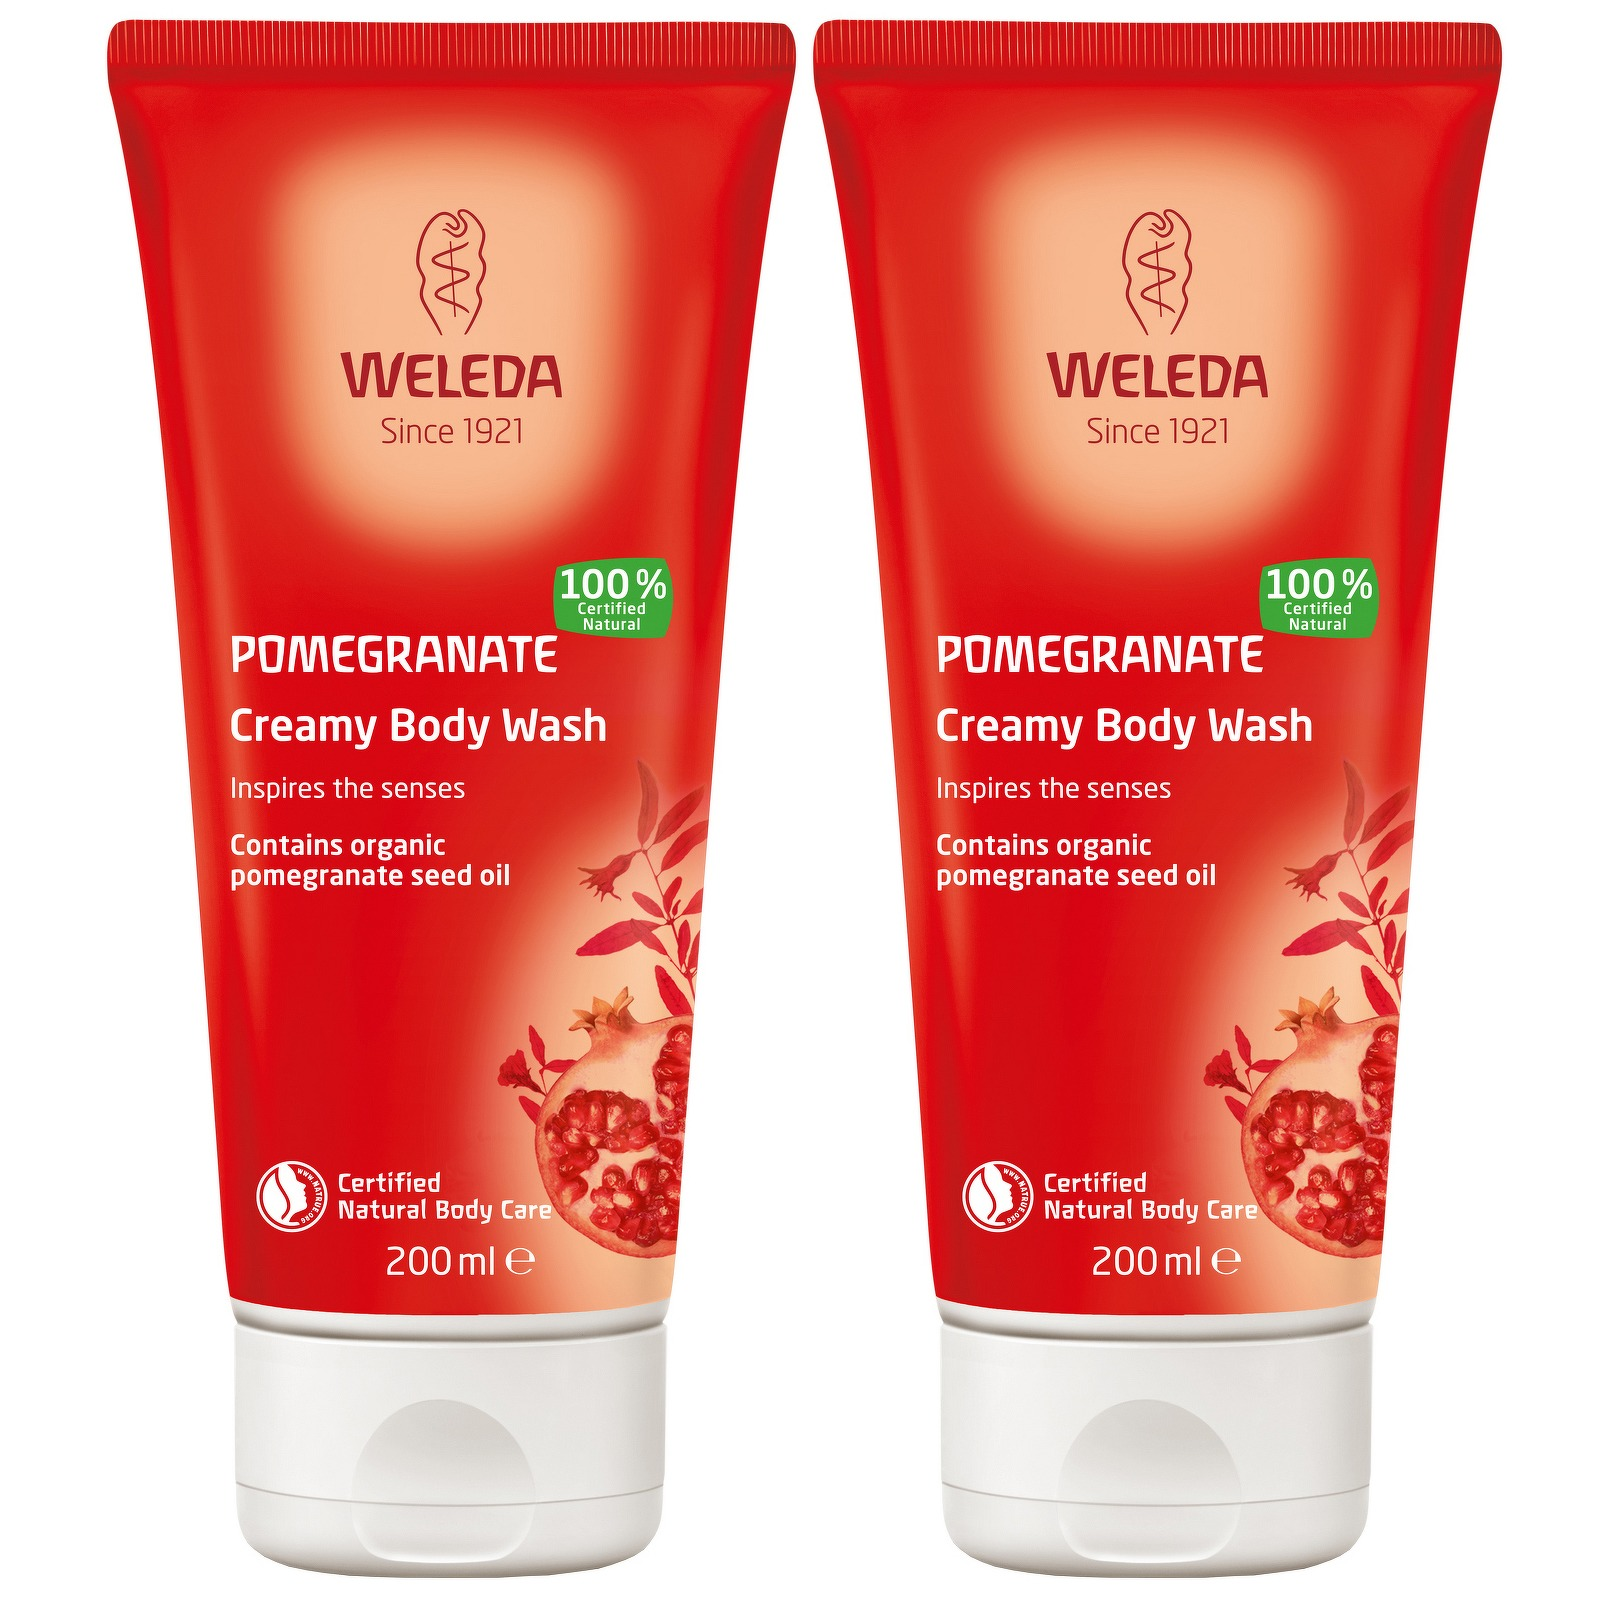 Weleda Body Care Pomegranate Creamy Body Wash 200ml x 2